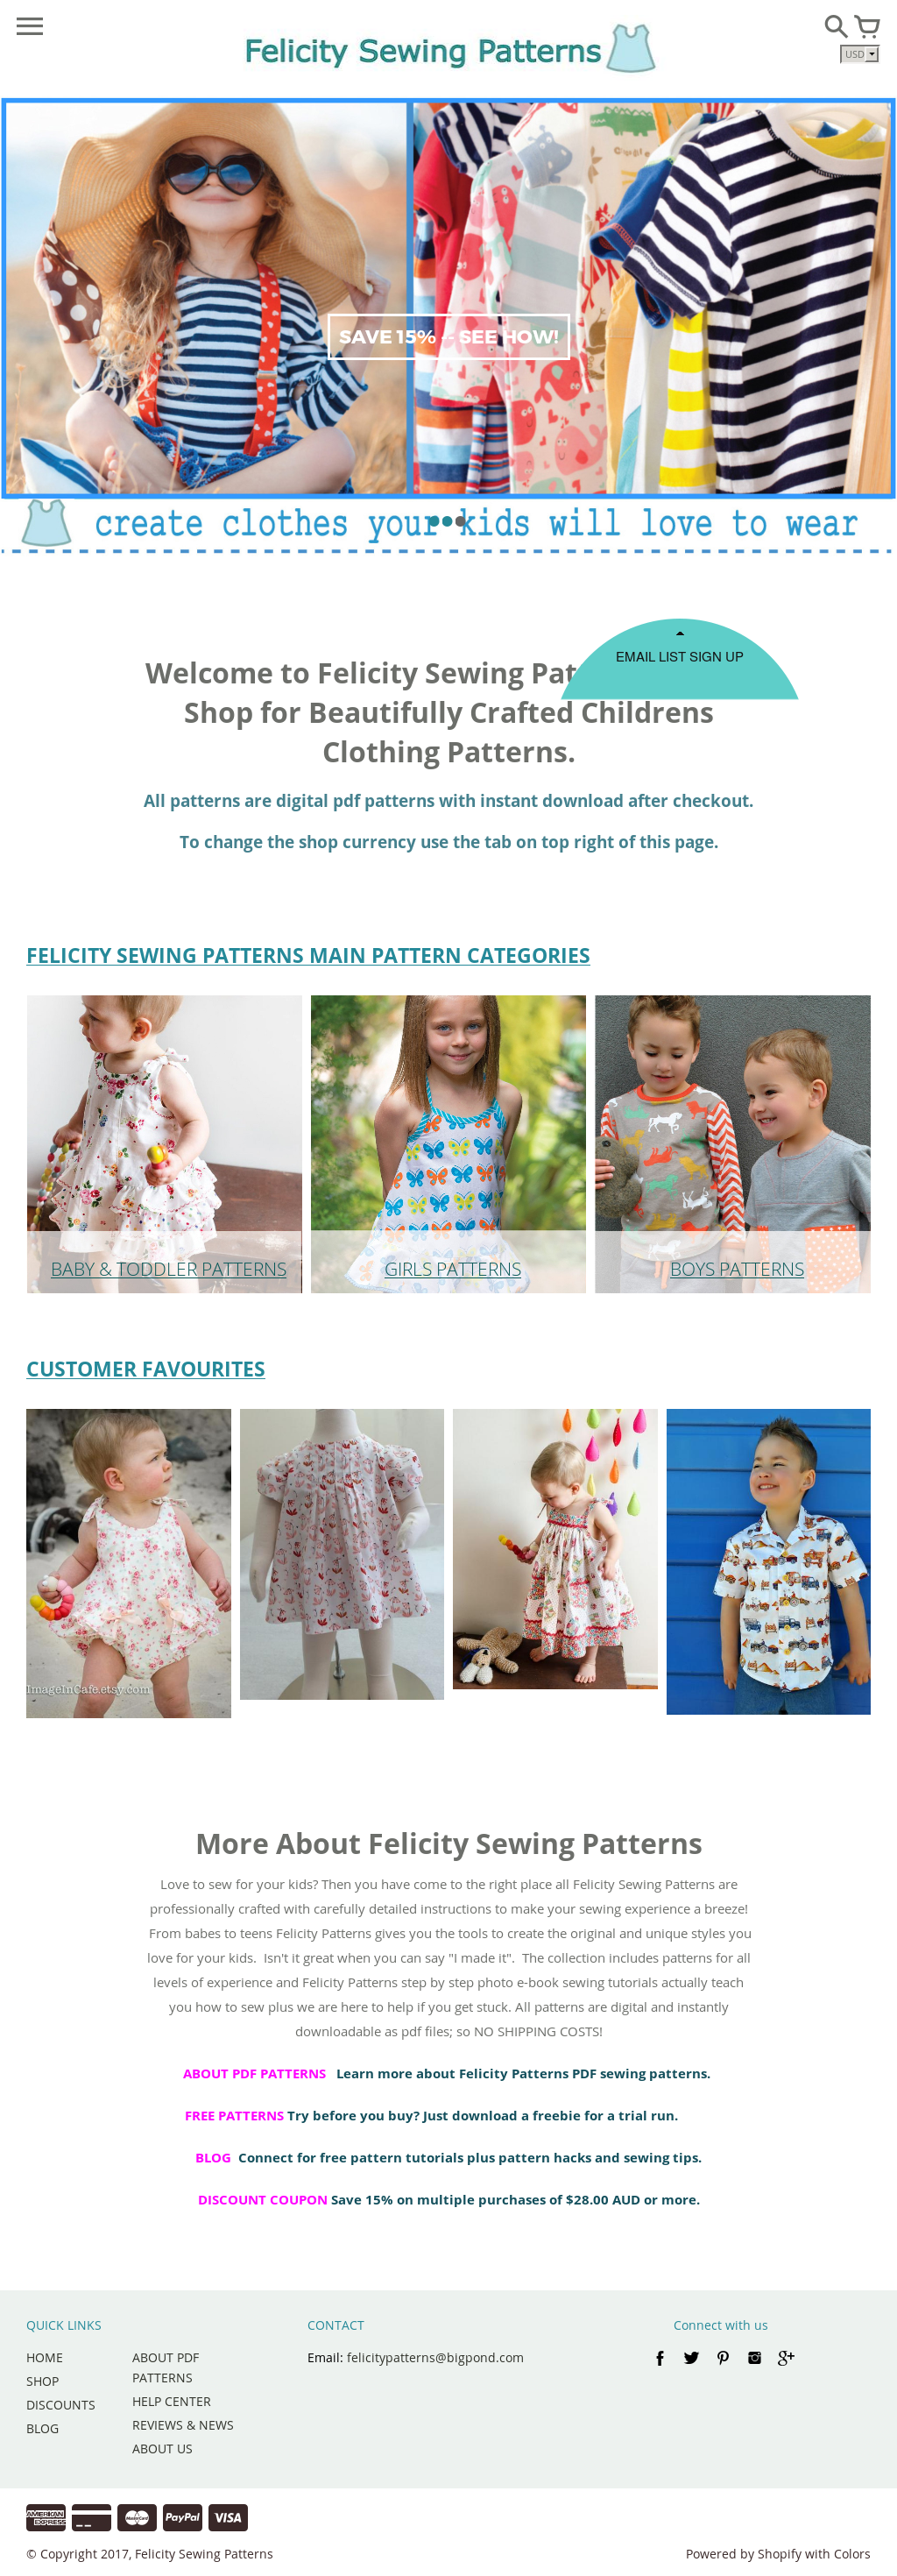 Felicity Sewing Patterns Competitors, Revenue and Employees